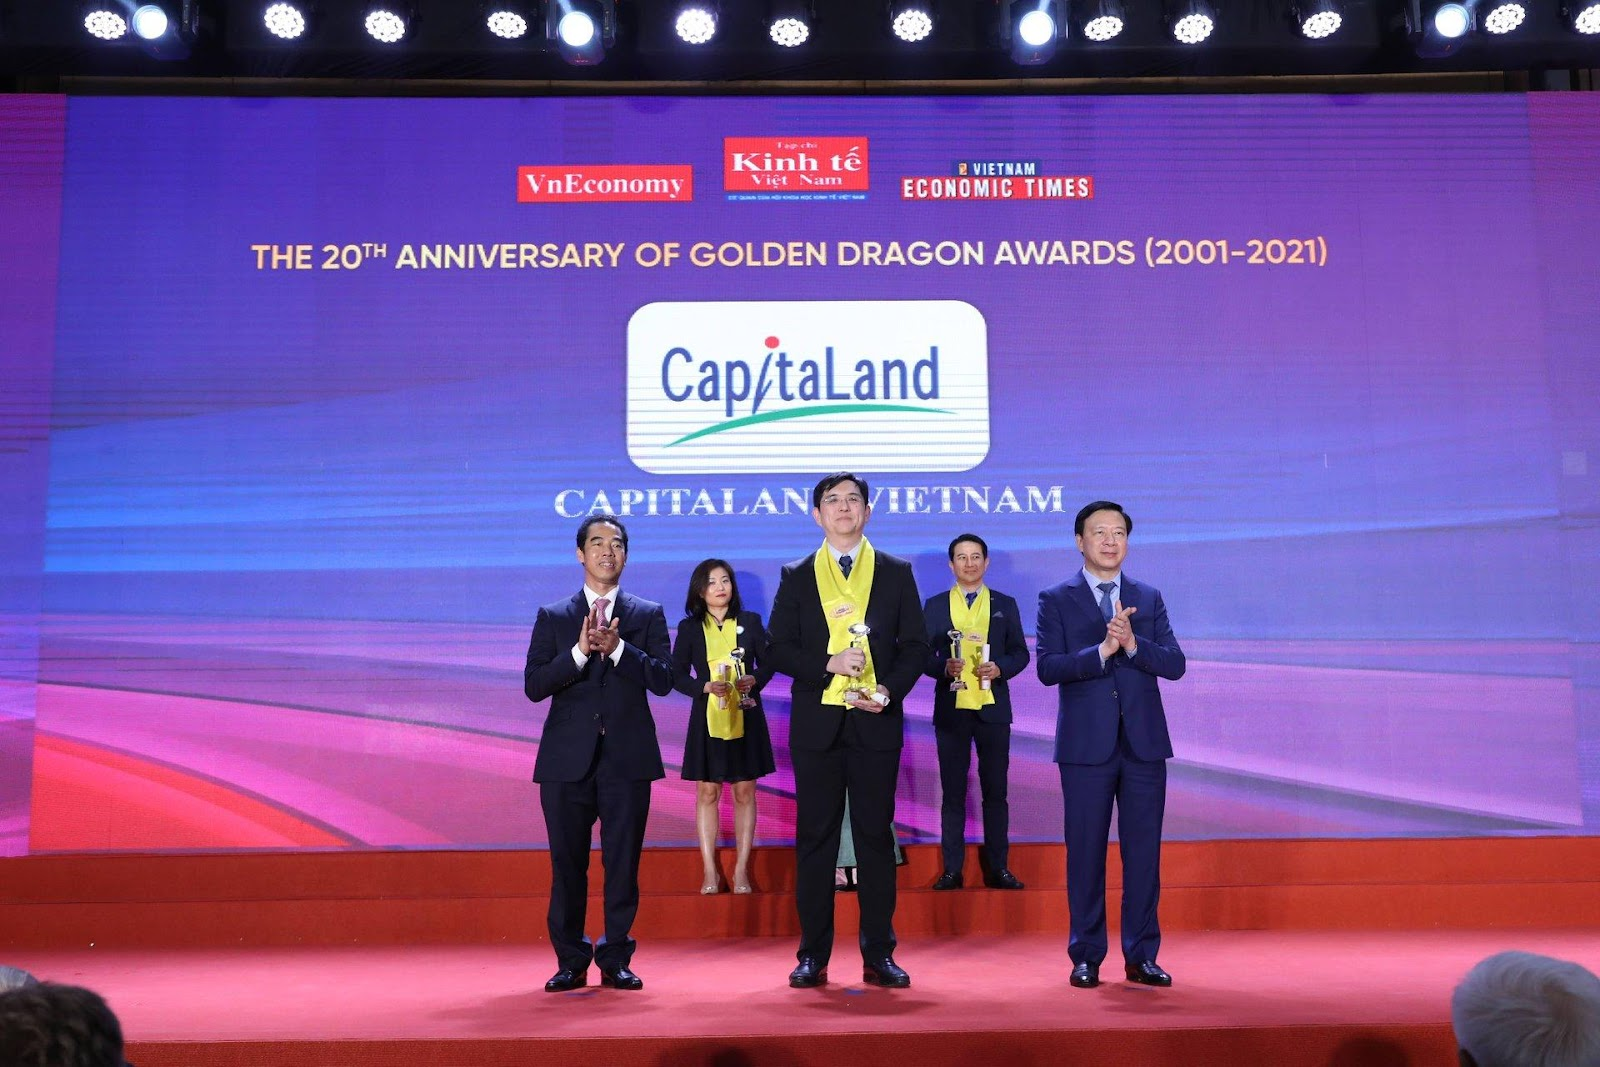 May be an image of 3 people, people standing, indoor and text that says 'VnEconomy Kinh Vam VIETNAM ECONOMIC TIMES THE 20TH ANNIVERSARY OF GOLDEN DRAGON AWARDS (2001-2021) Cap/taLand CAPITALAN VIETNAM NI'